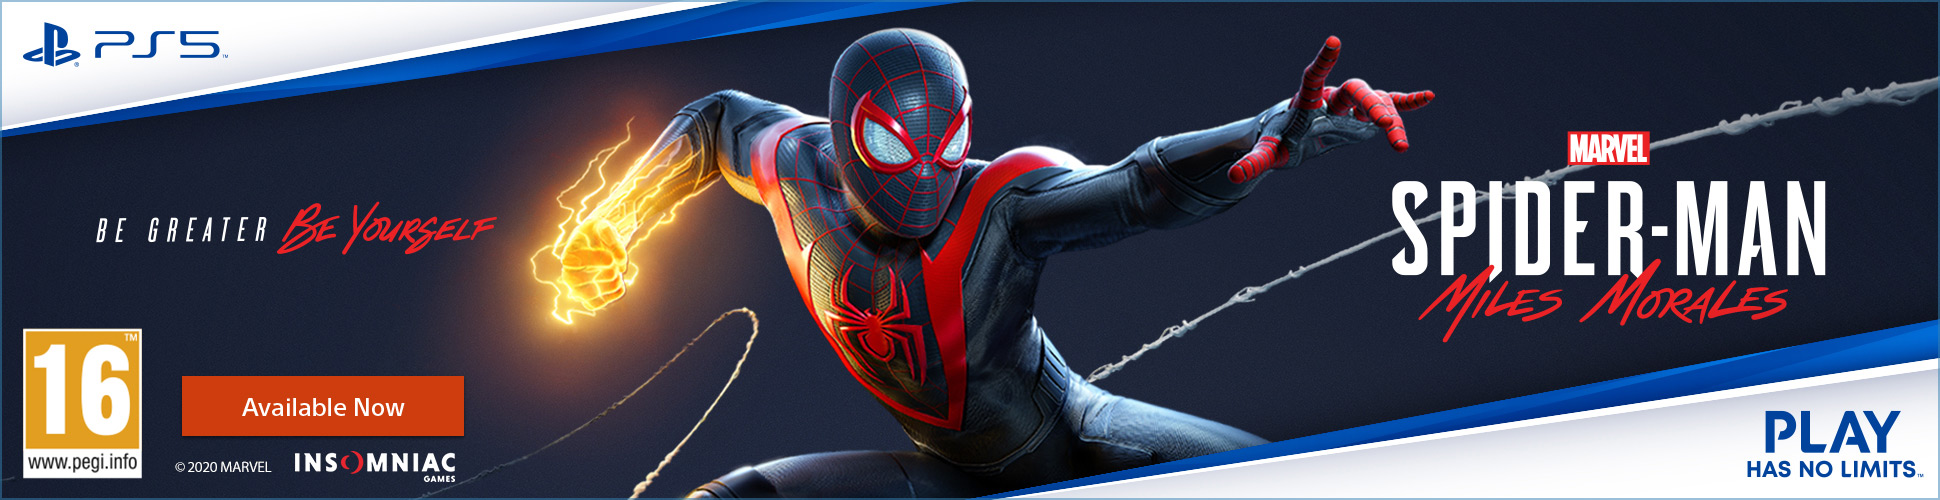 Ps5 Miles Morales